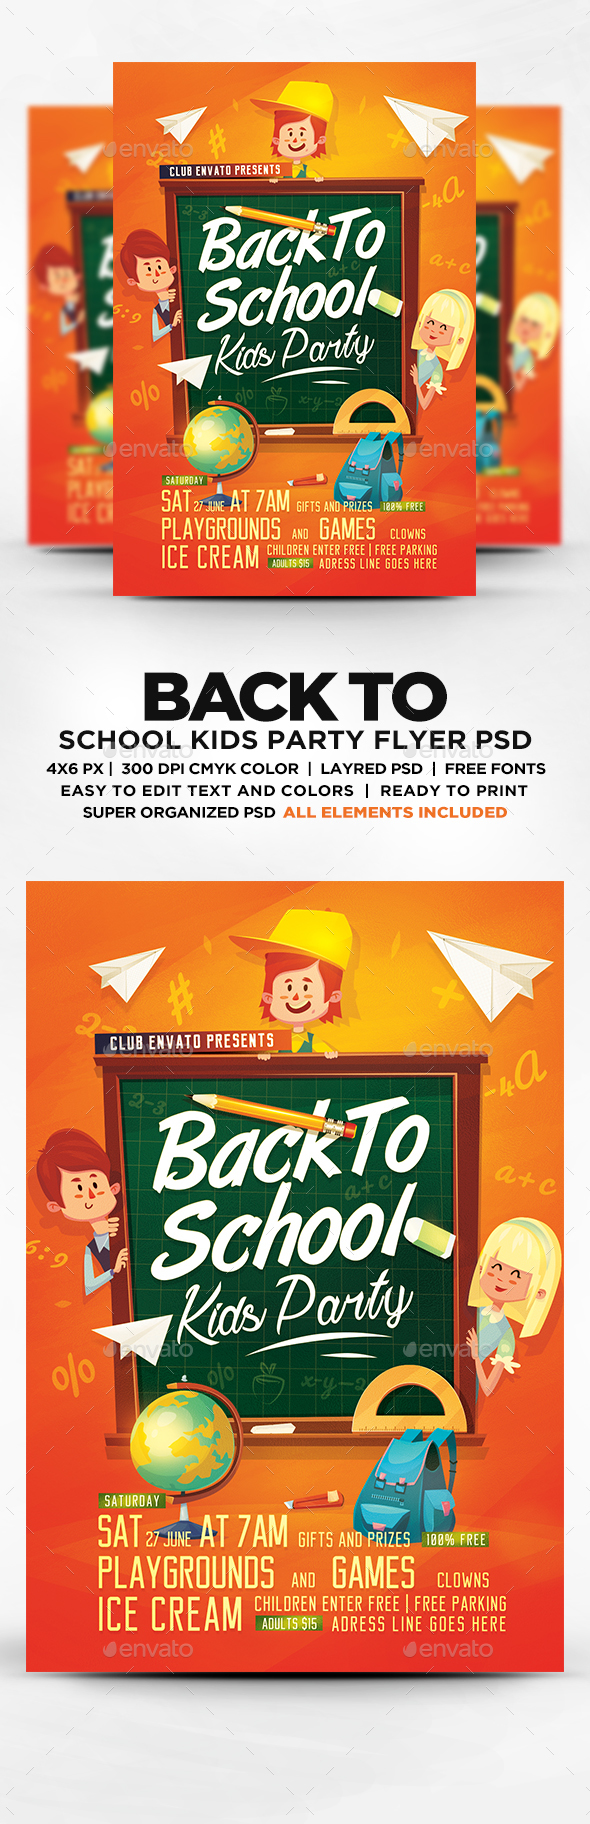 Back To School Kids Party Flyer Template Psd Download Here Https